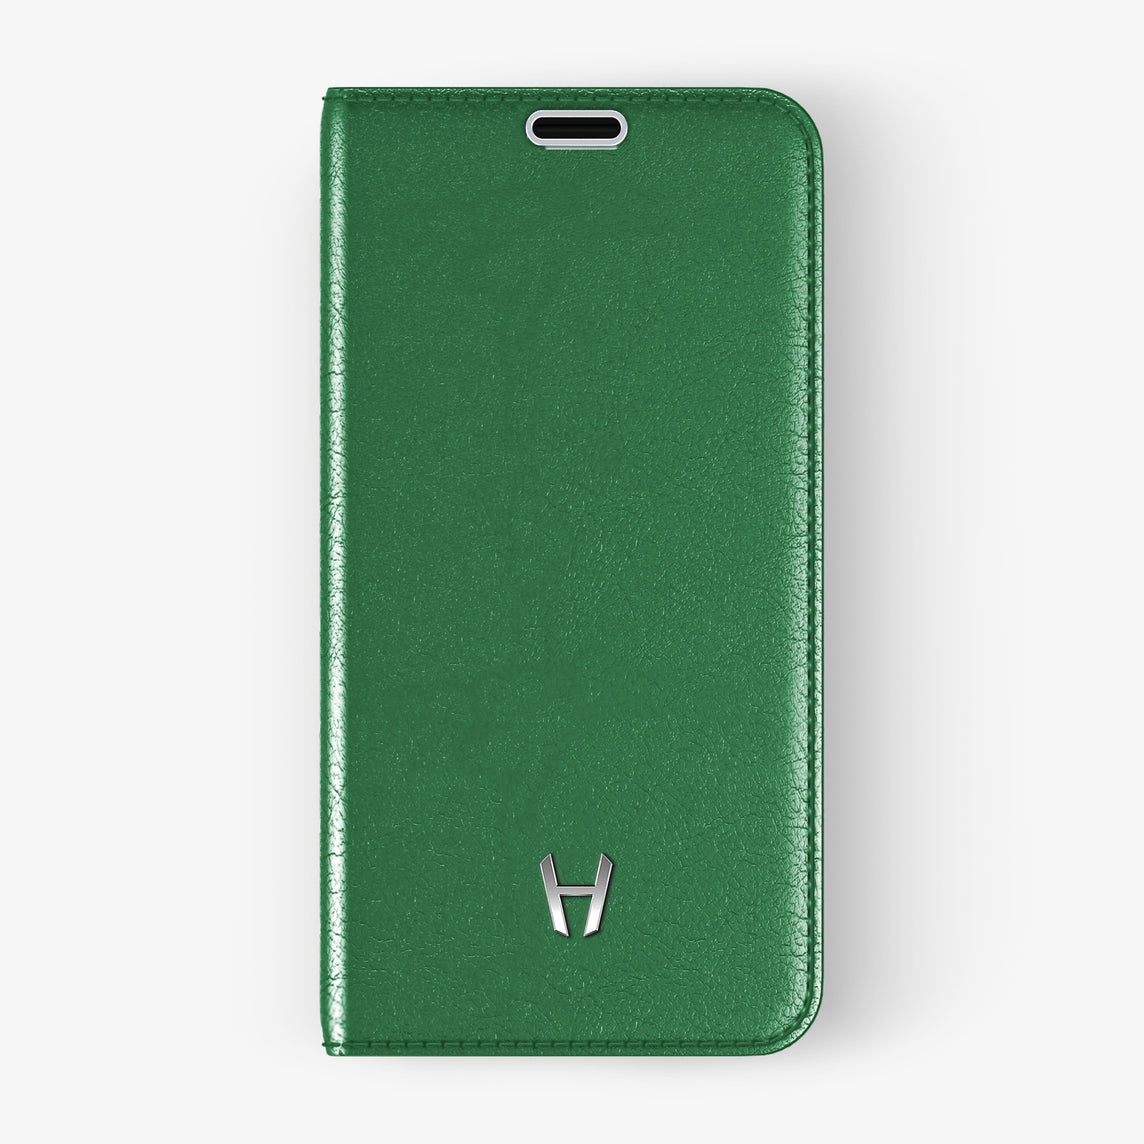 Calfskin Folio Case iPhone 11 Pro | Green - Stainless Steel